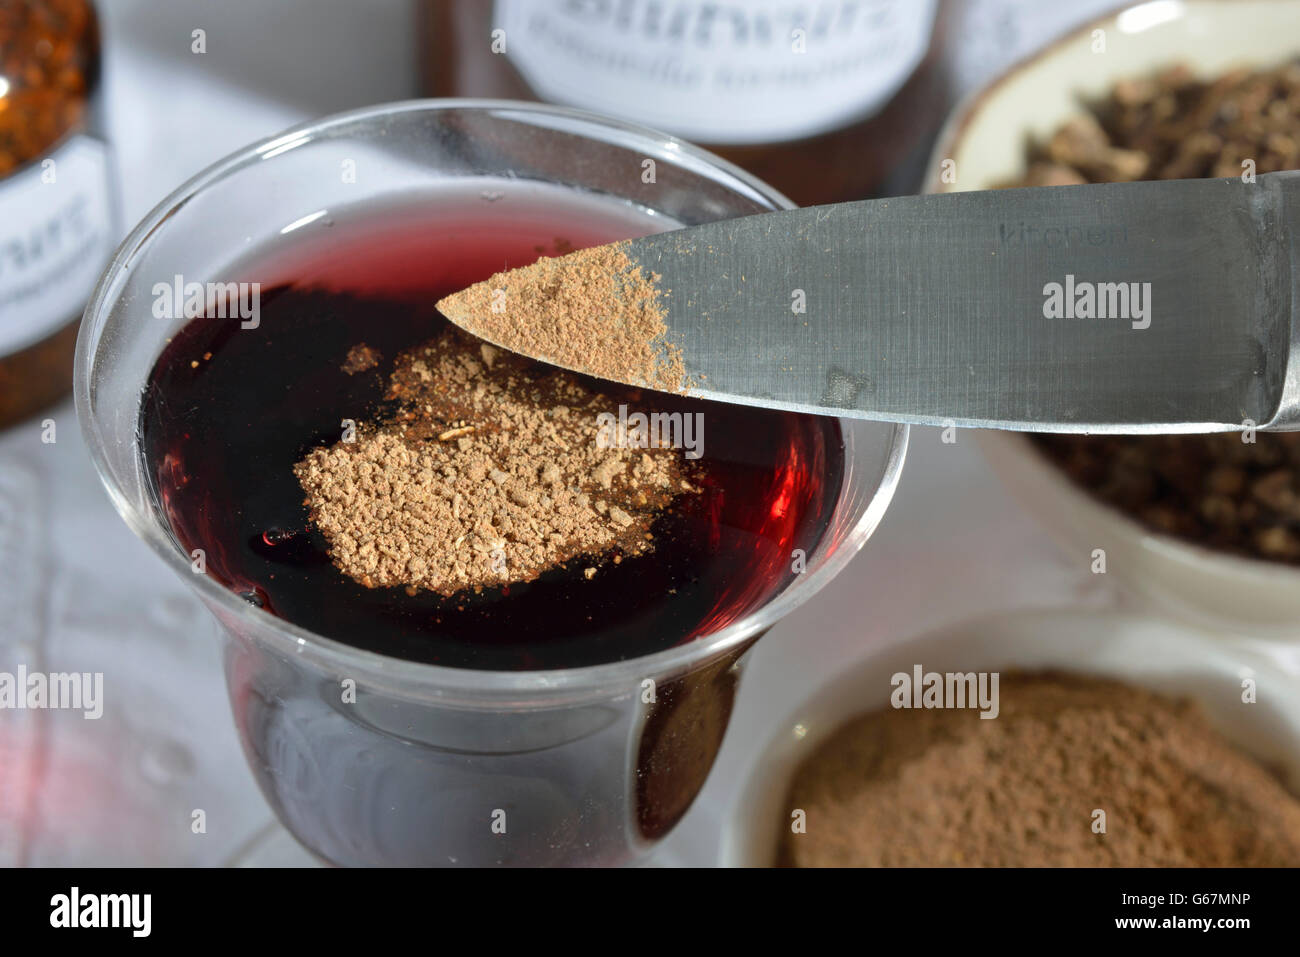 Tormentil root powder in red wine - Stock Image